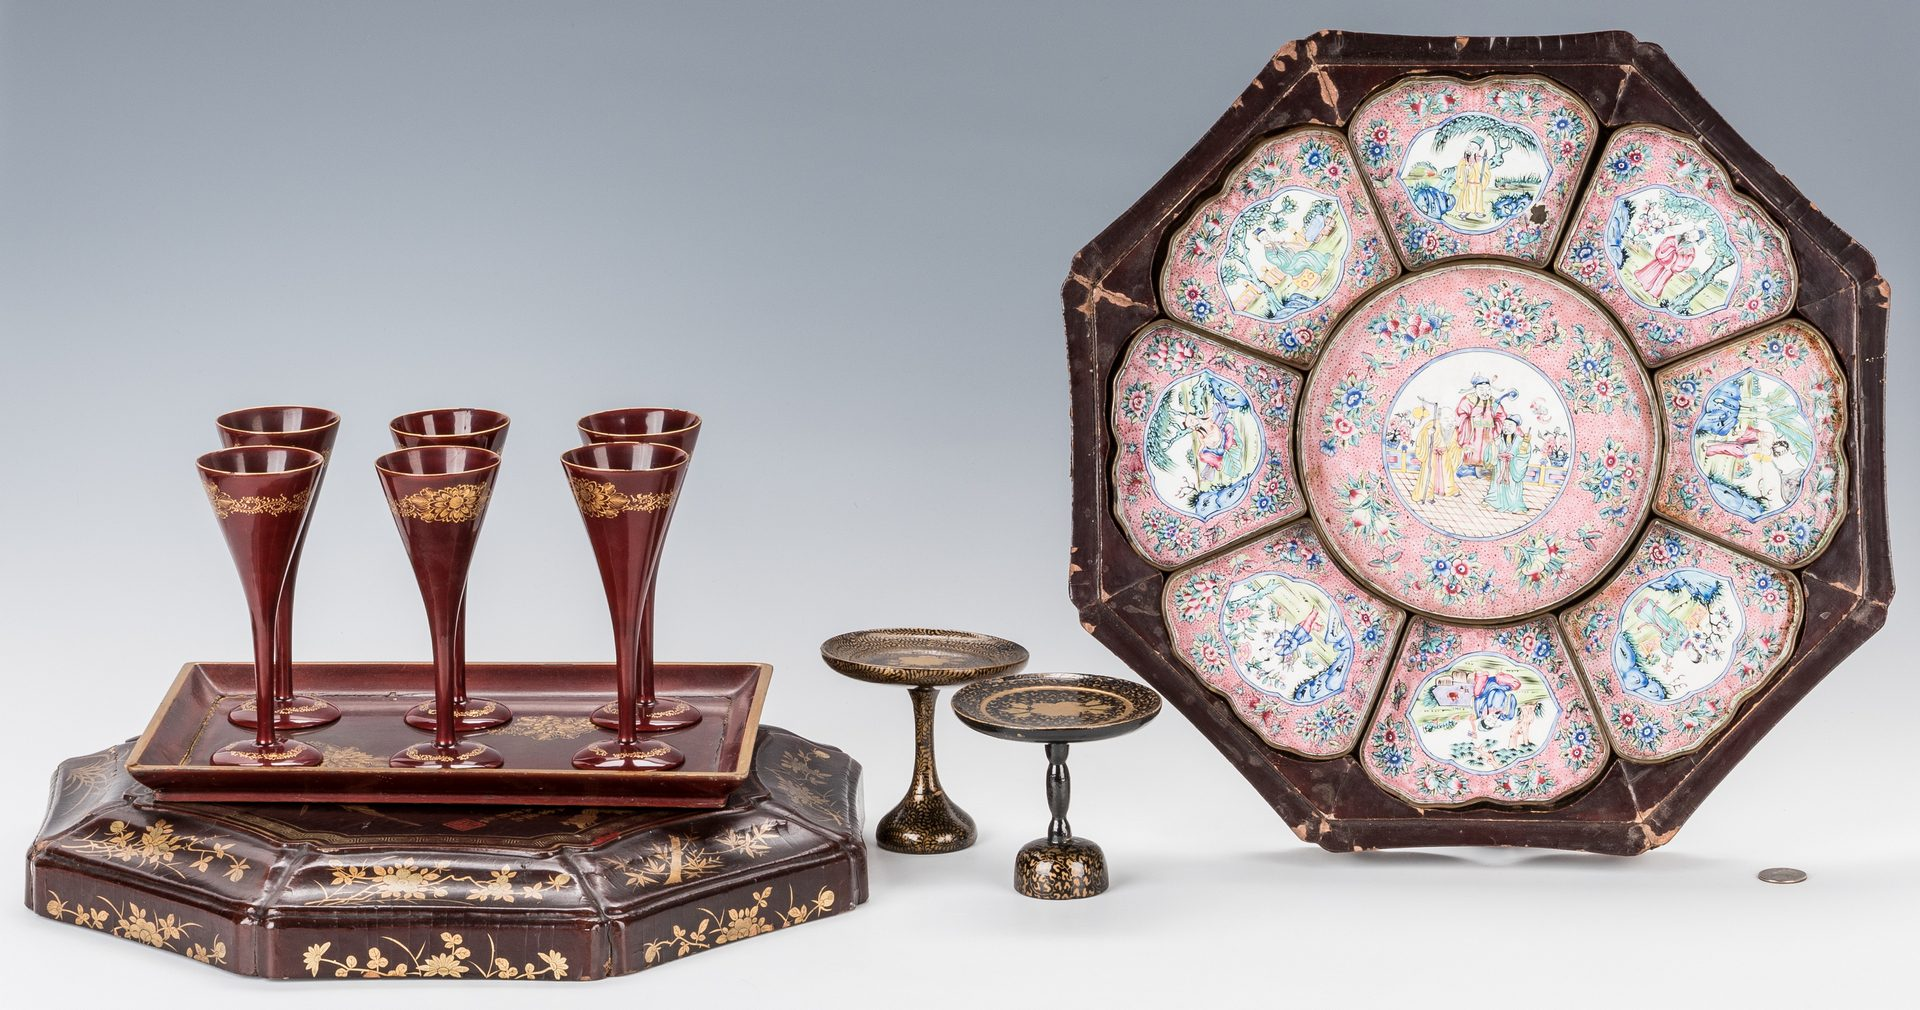 Lot 339: Chinese Enamel Sweetmeat Set plus Lacquer Items, 19 total pcs.